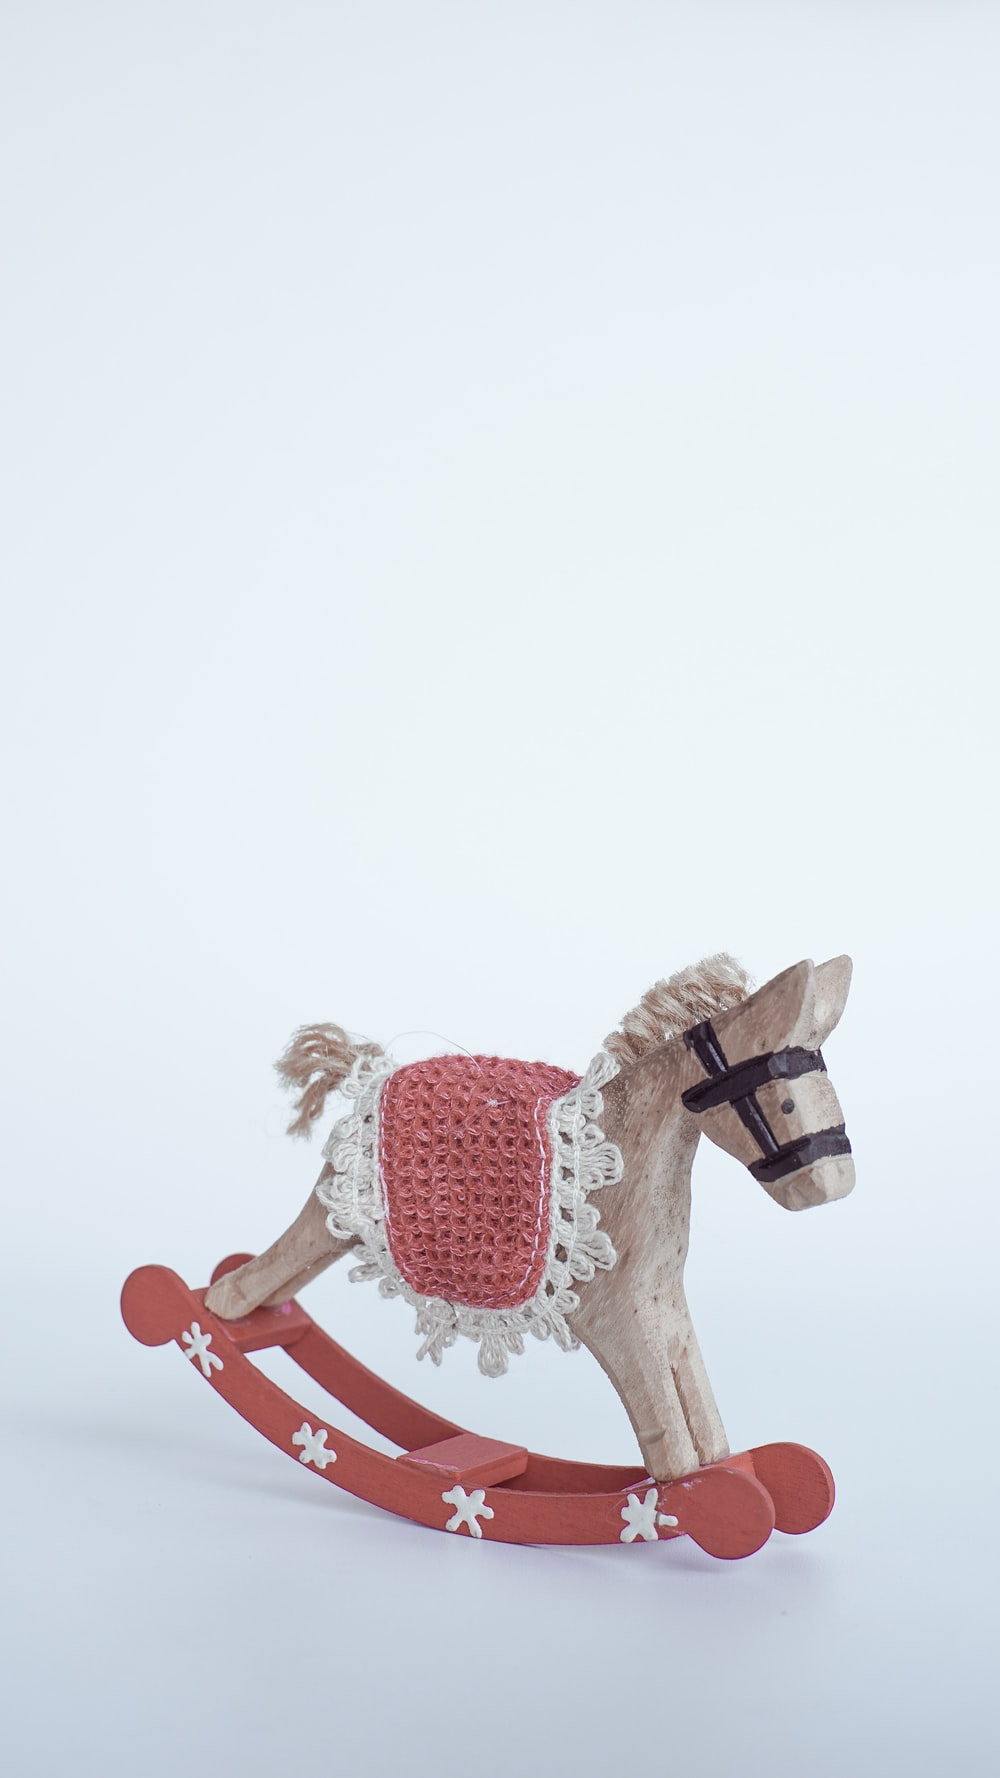 brown and red rocking horse toy